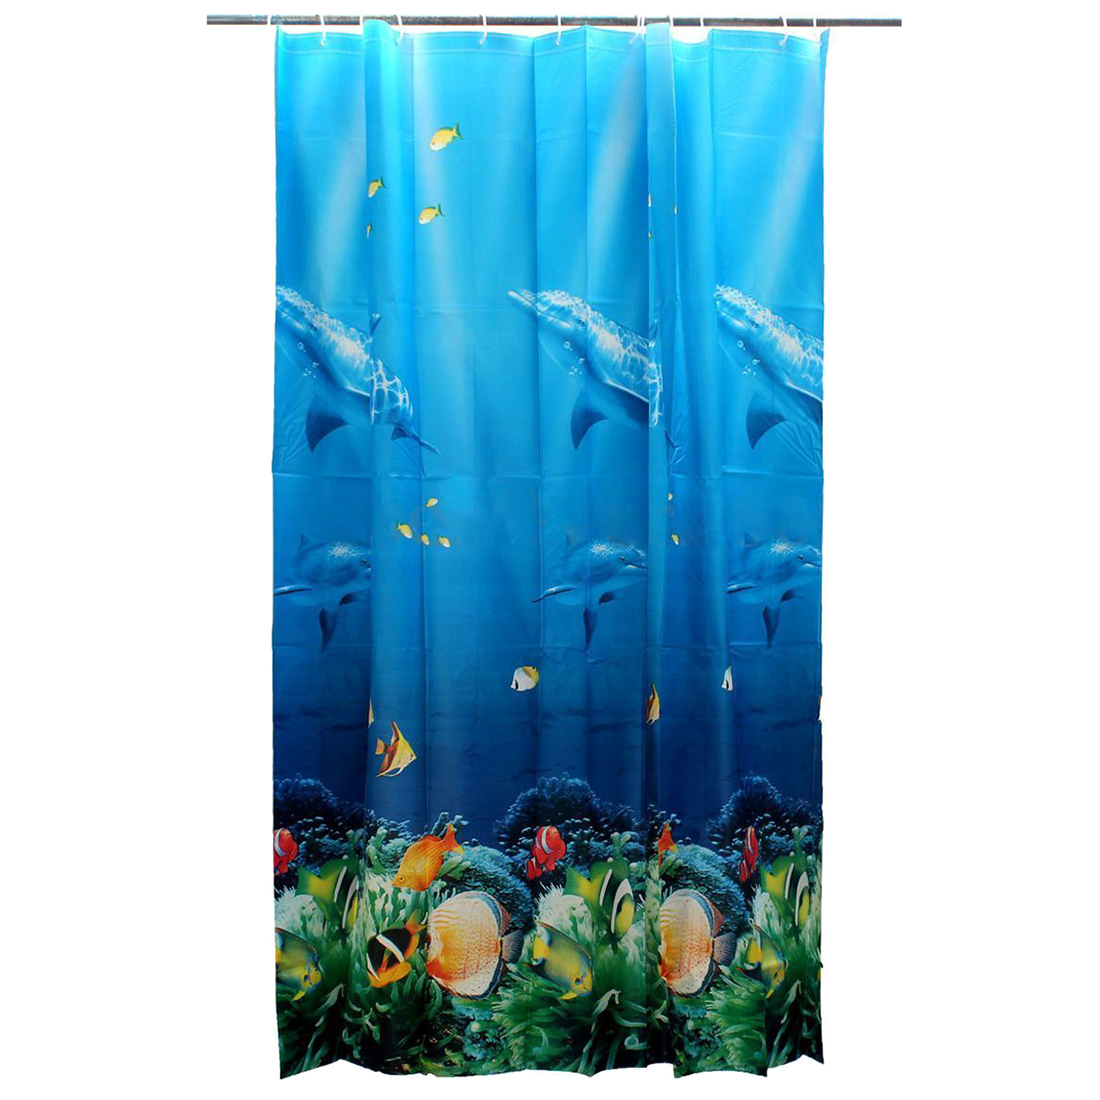 Blue Turquoise Coral White Fabric Shower Curtain Shower